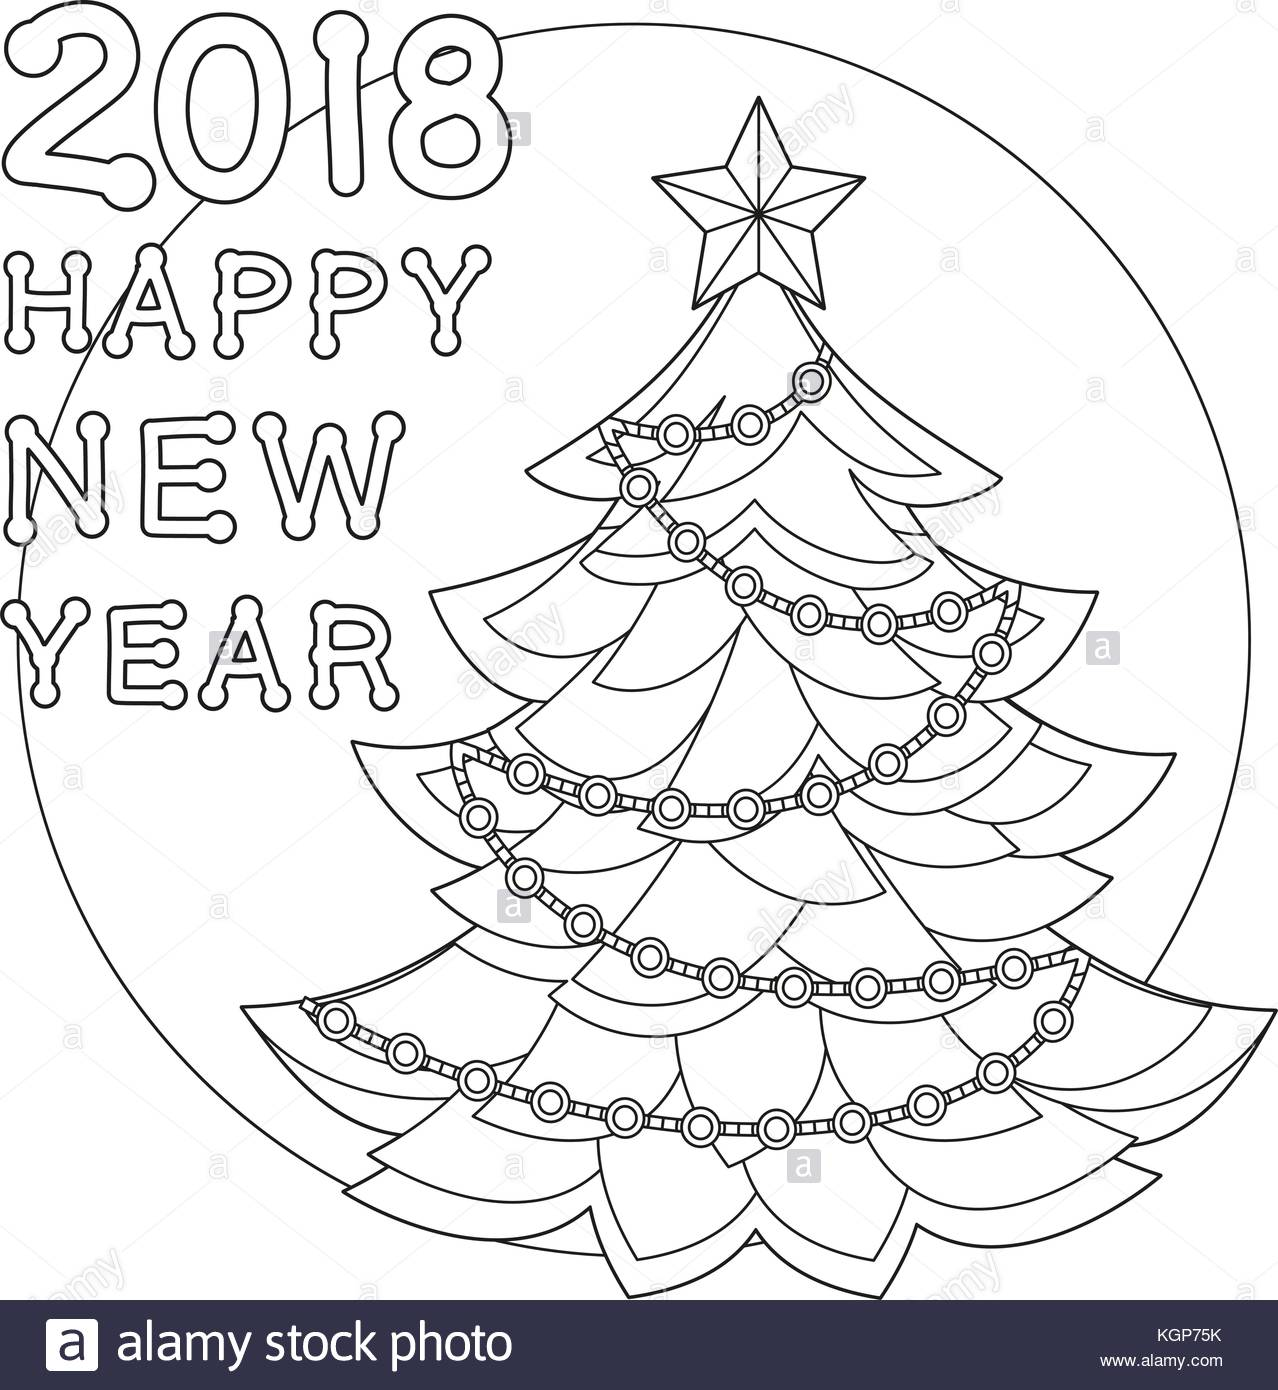 1278x1390 Happy New Year 2018 Black And White Stock Photos Amp Images